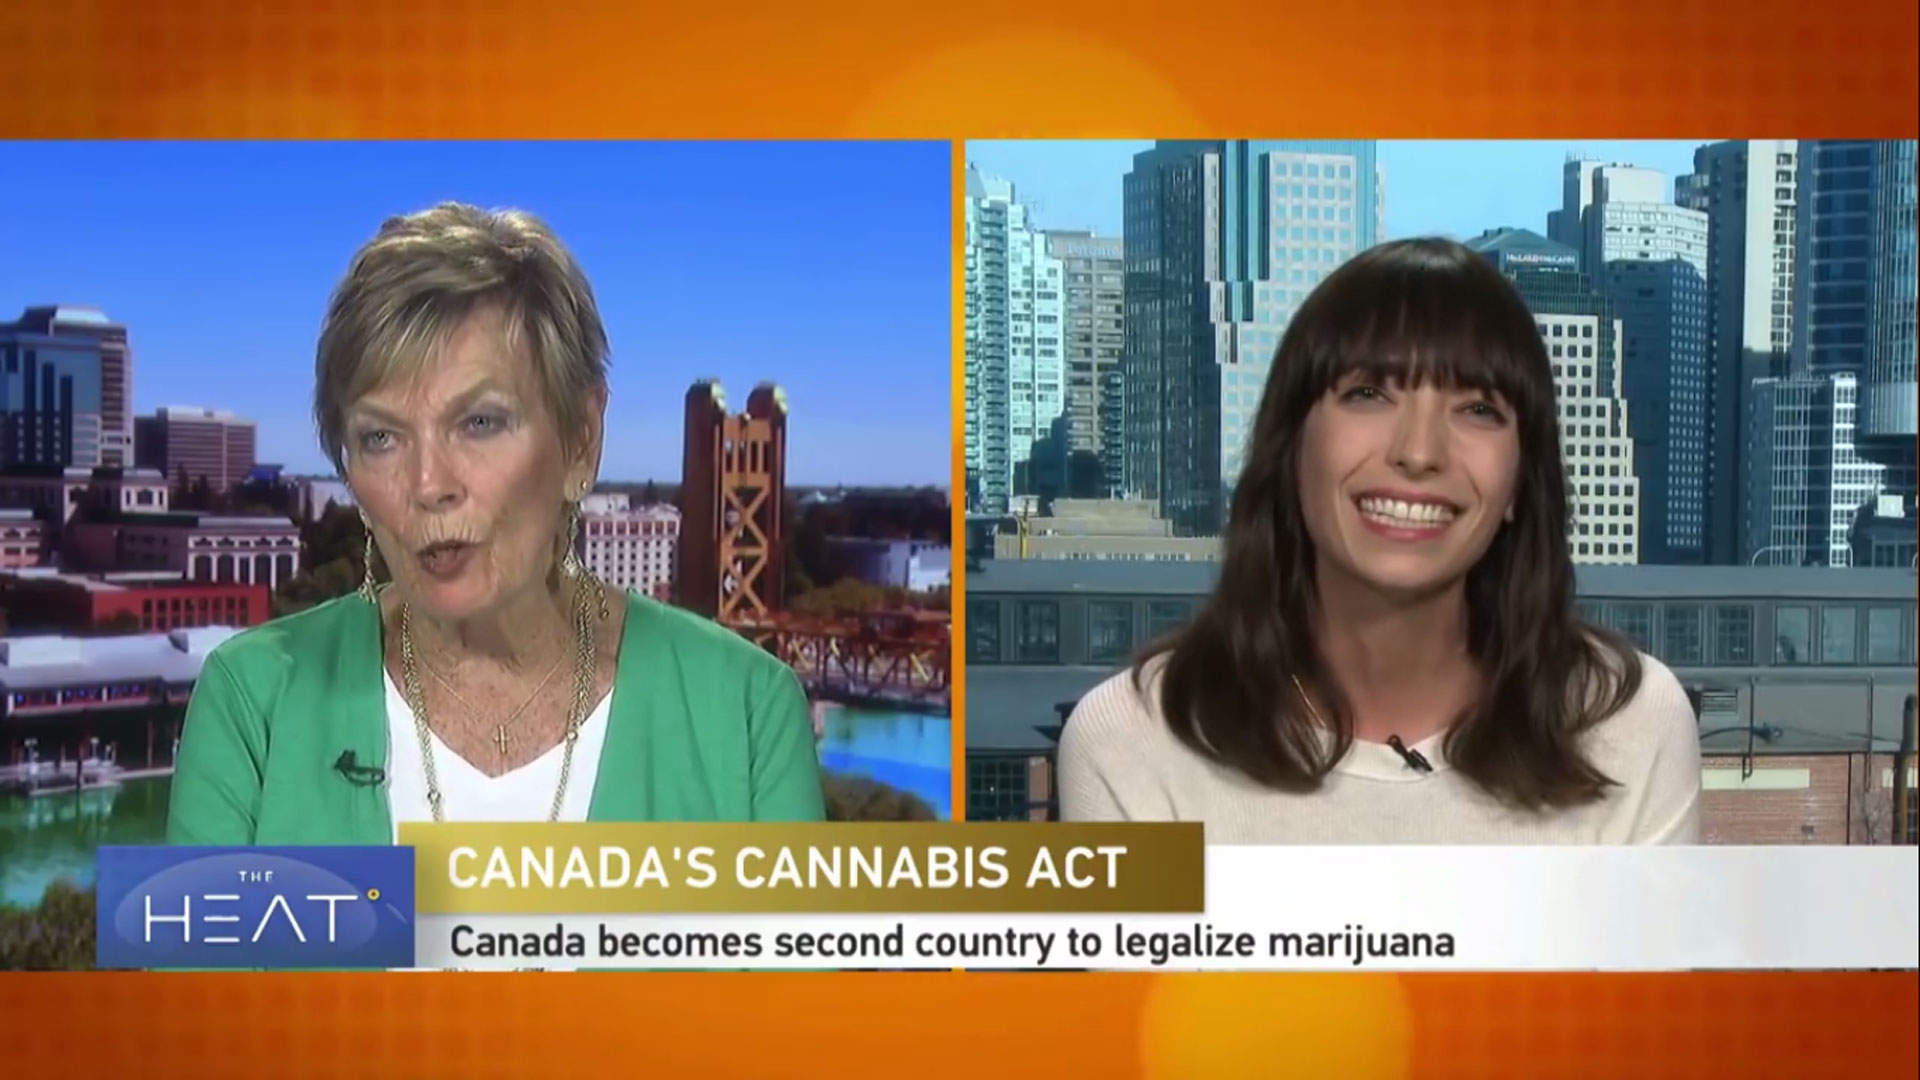 CGTN: Canada's Legalization of Cannabis